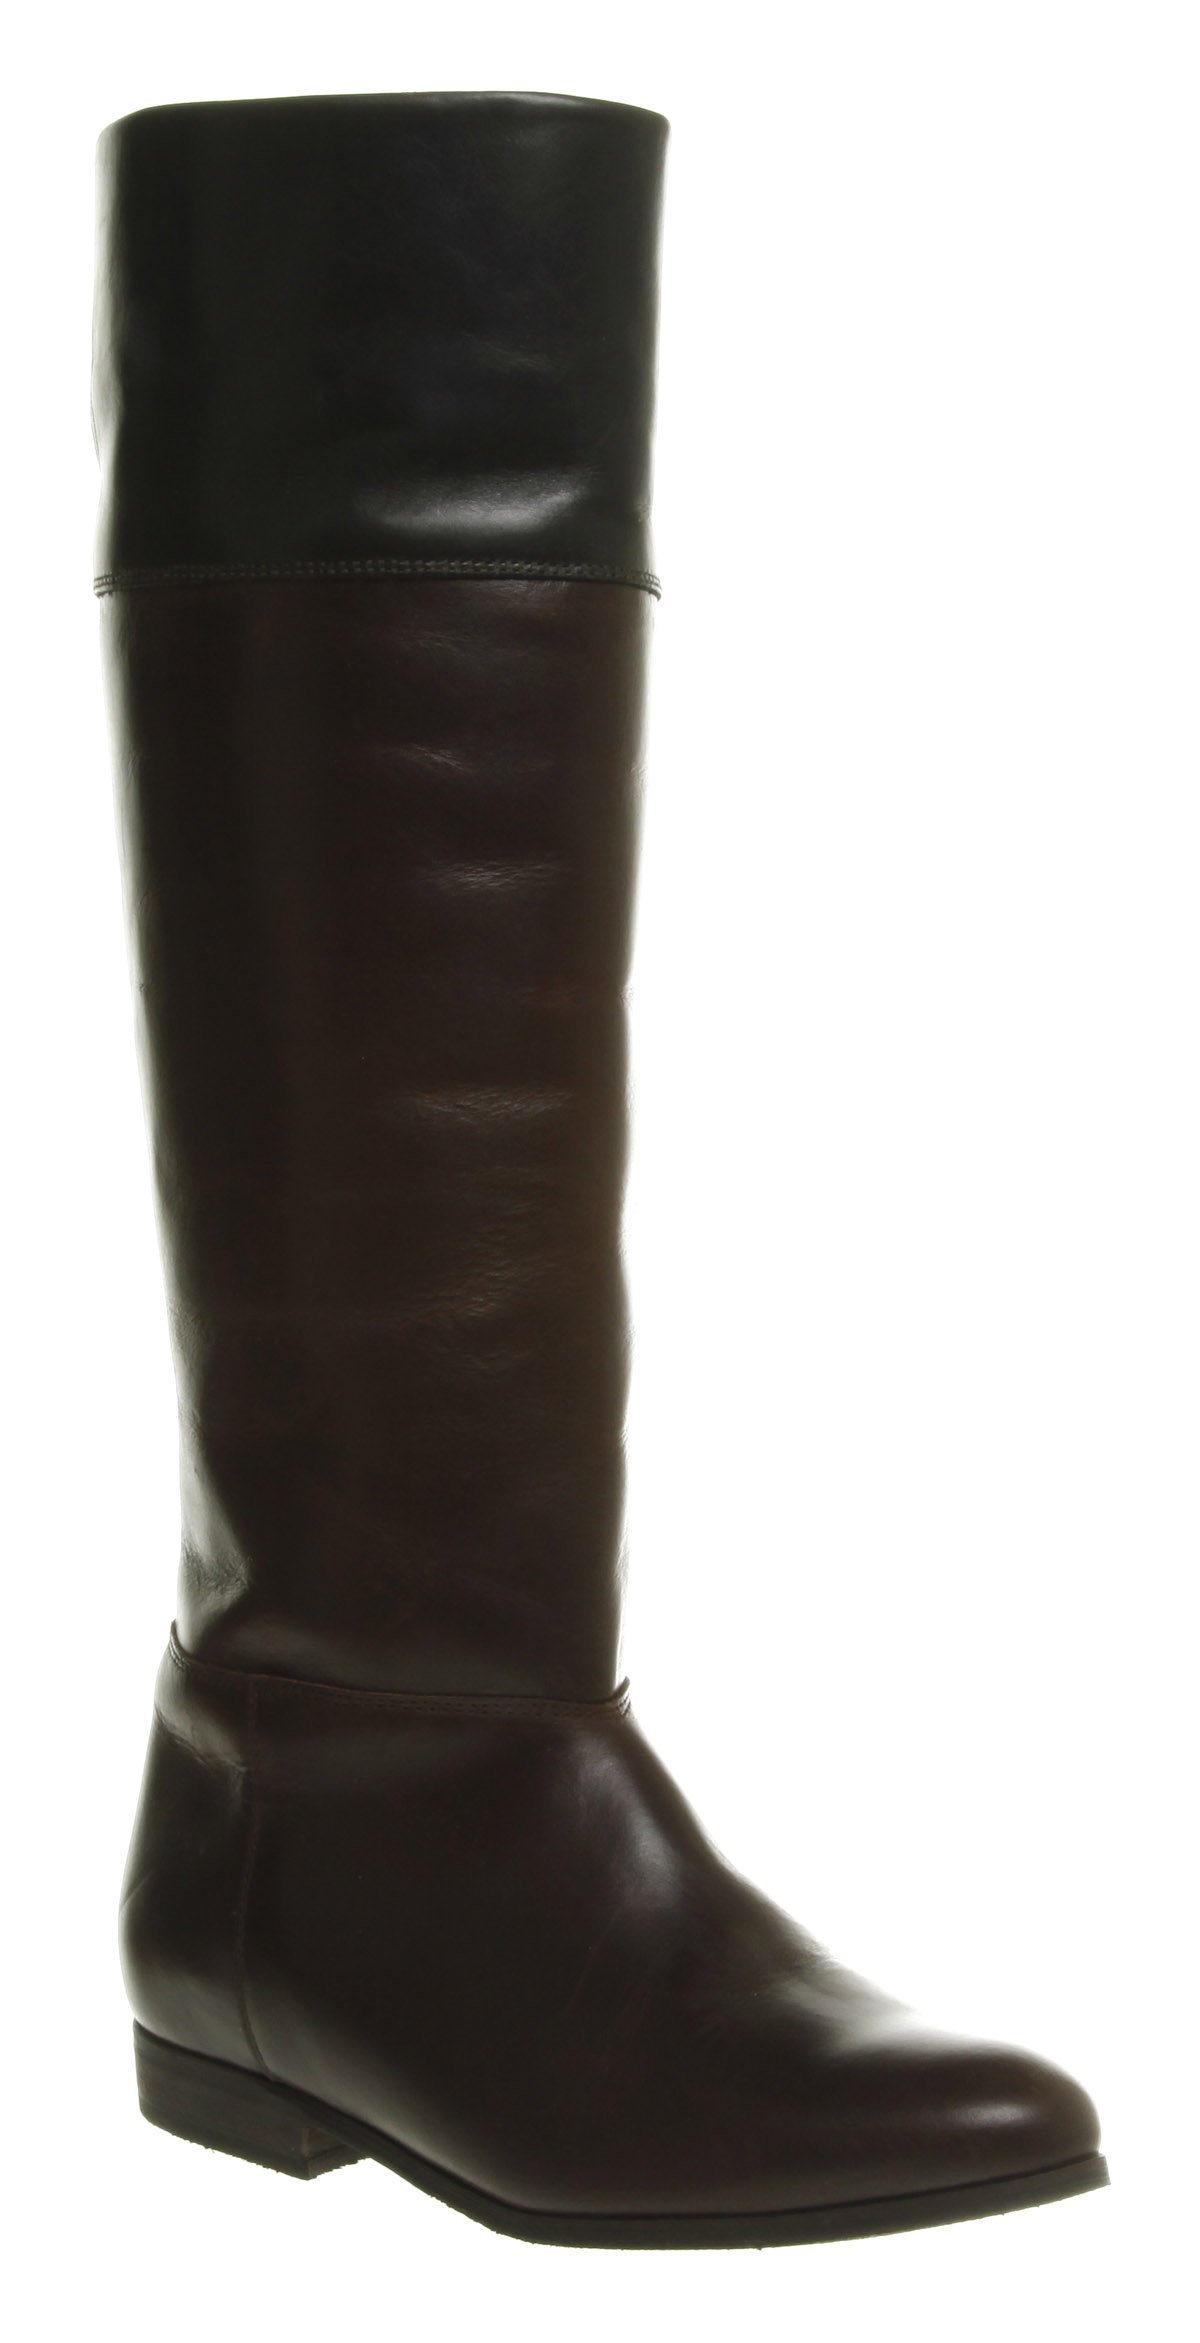 Womens-Office-Clippety-Clop-Tall-Chocolate-Brown-Green-Leather-Riding-Boots